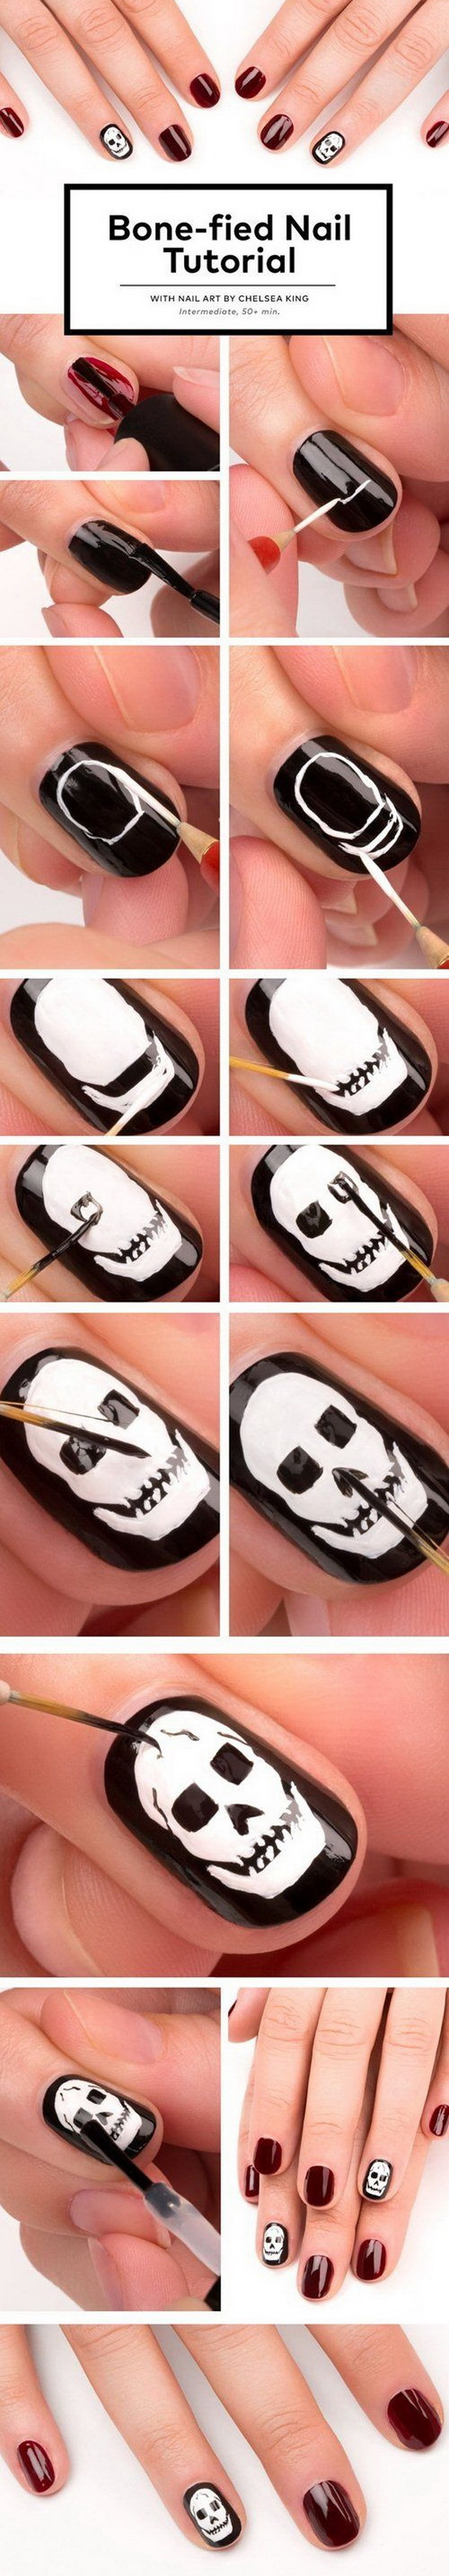 Spooky and Cute Halloween Nail Art.